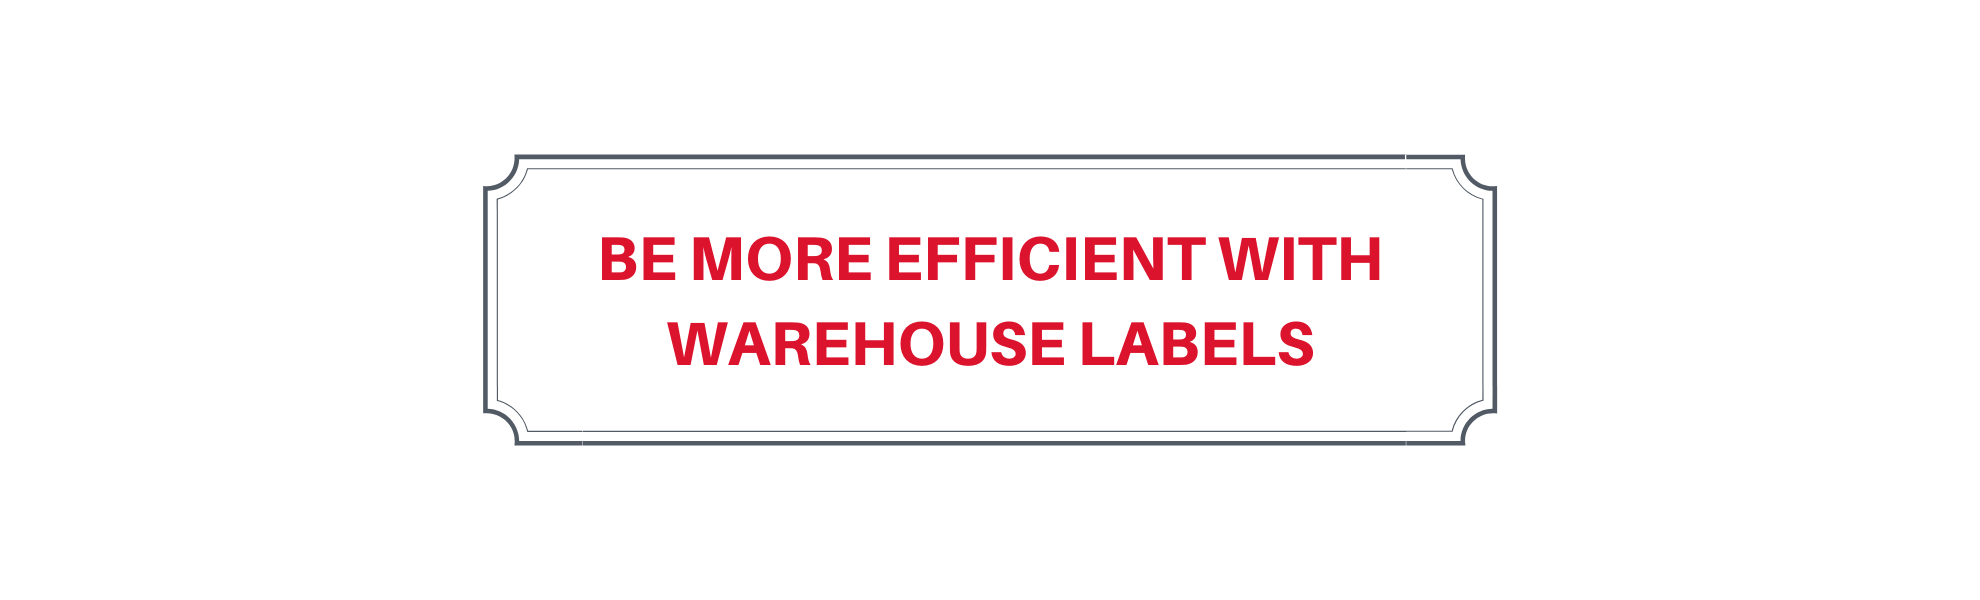 banner_warehouse_labels